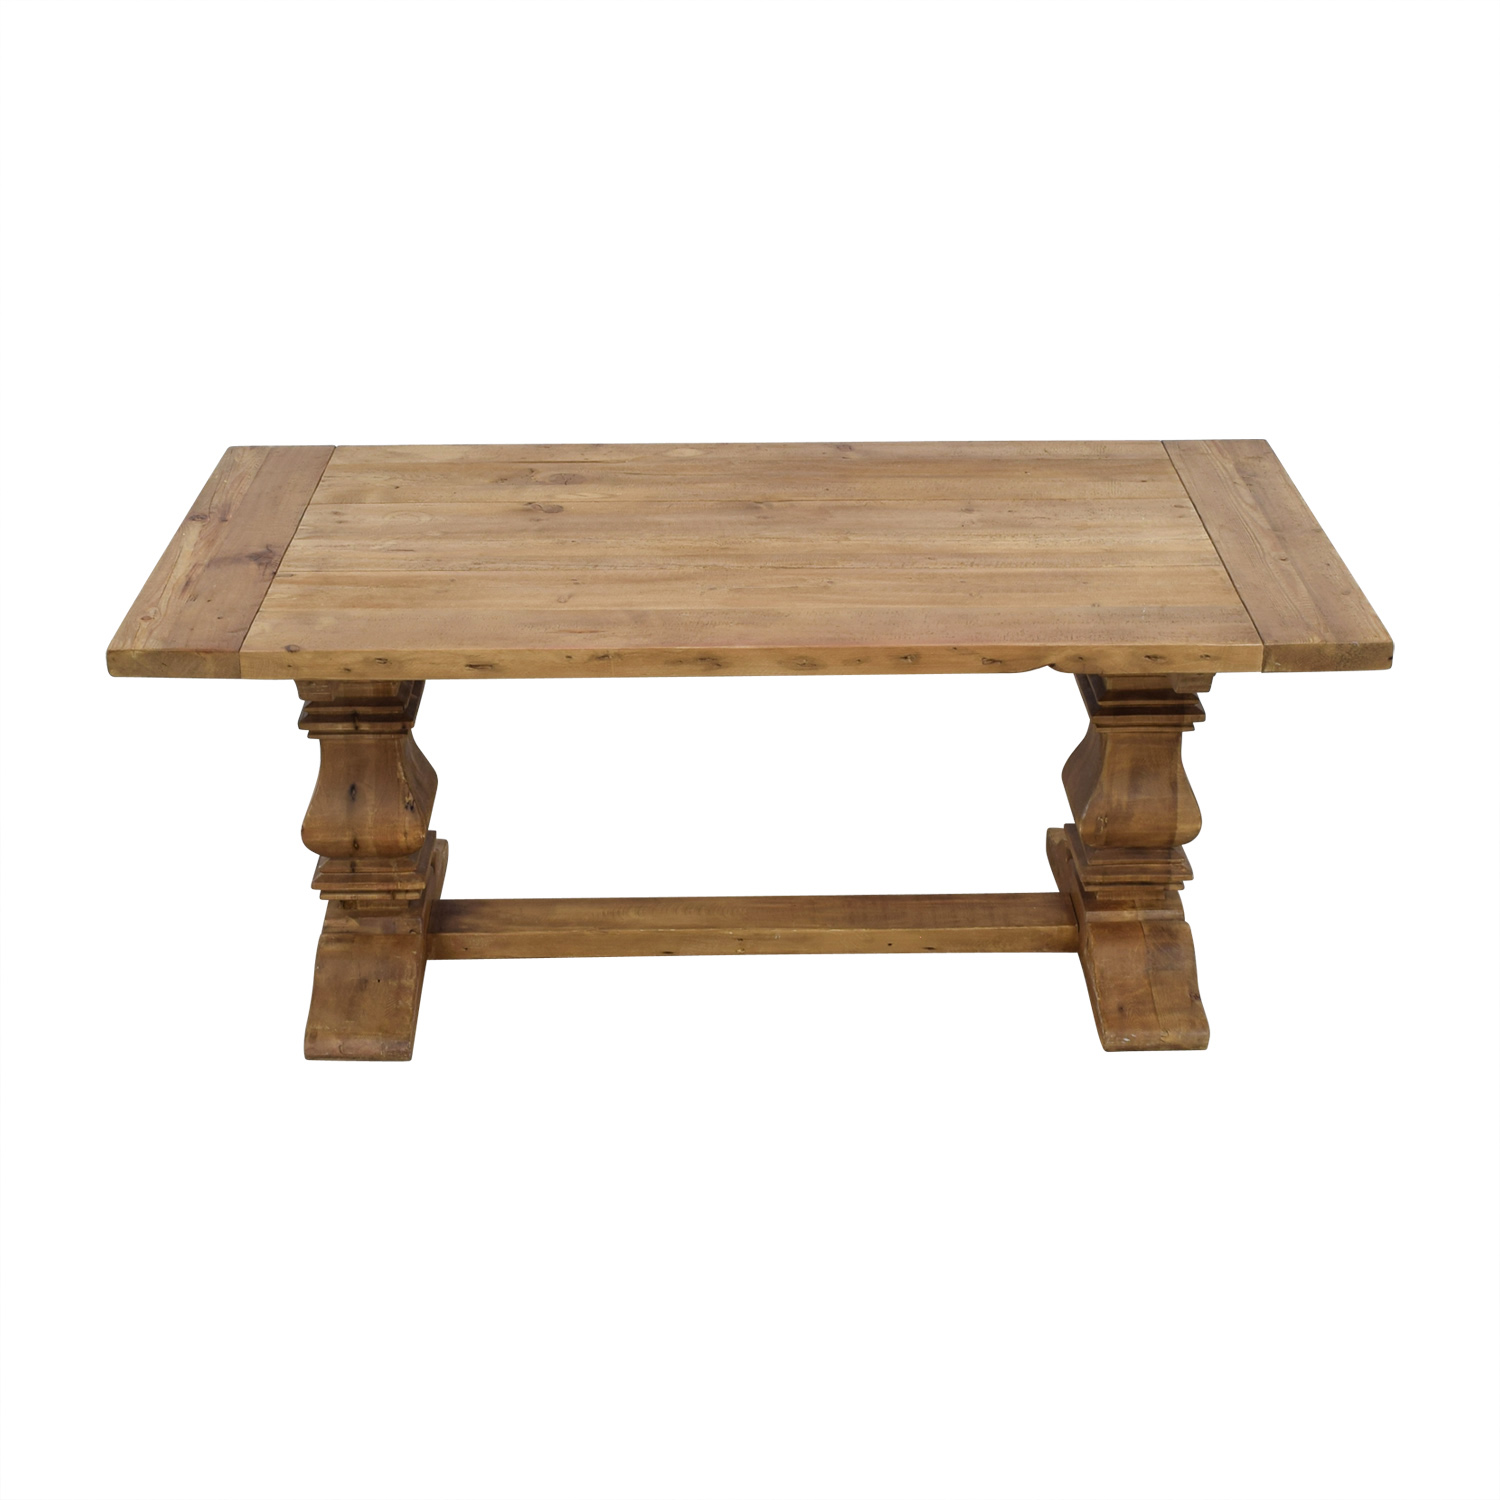 Restoration Hardware Salvaged Wood Trestle Extendable Dining Table sale